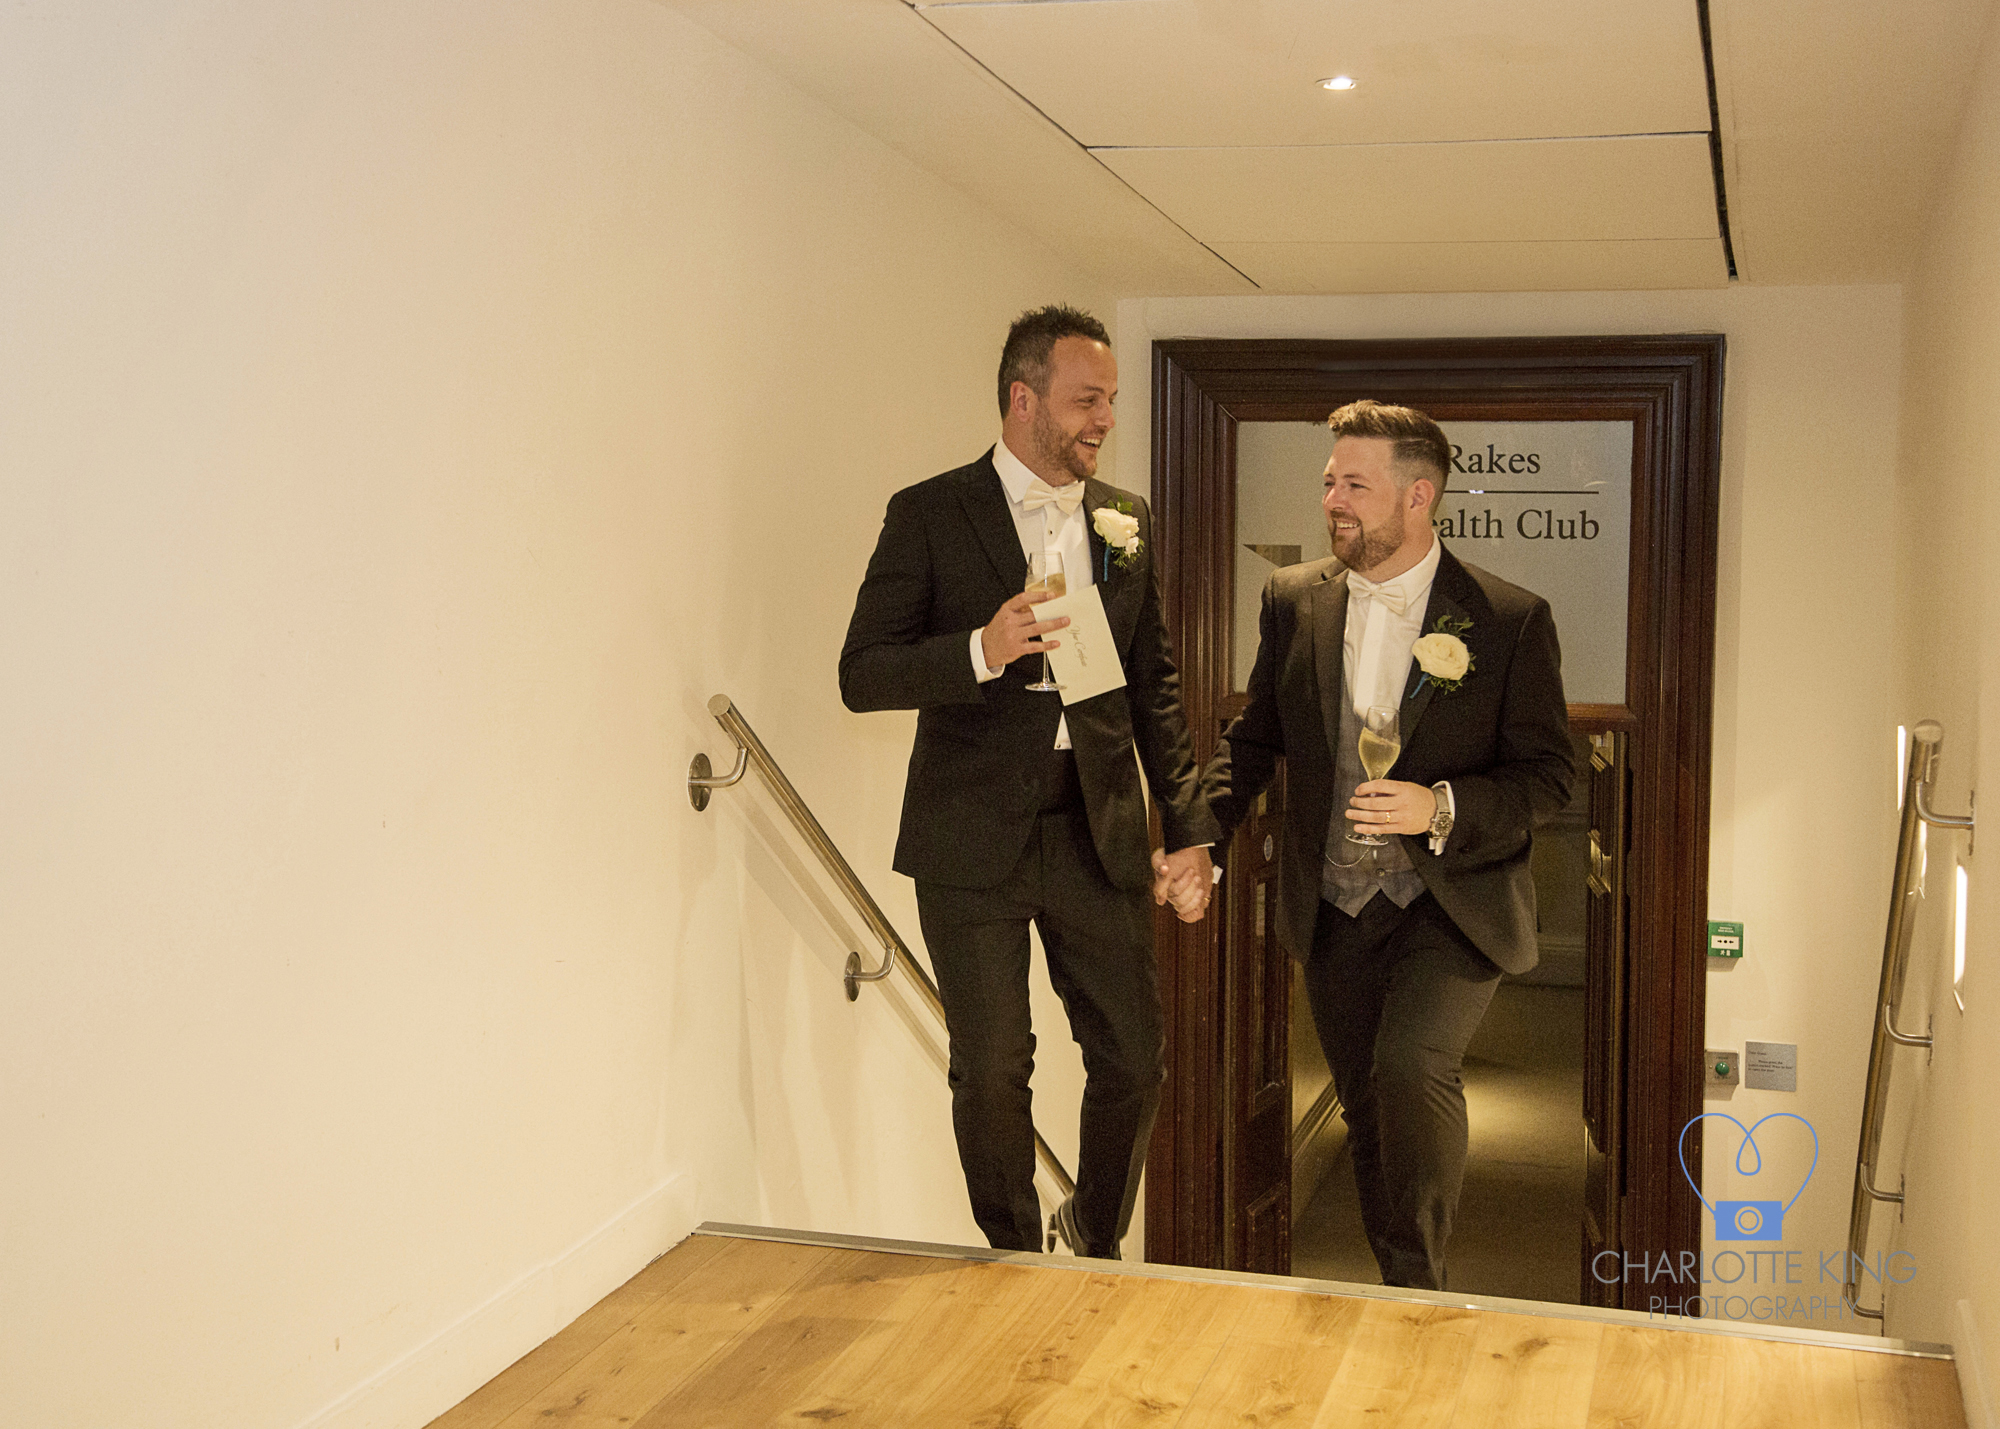 Andaz-Wedding-Photographer-Charlotte-King-Photography (107)